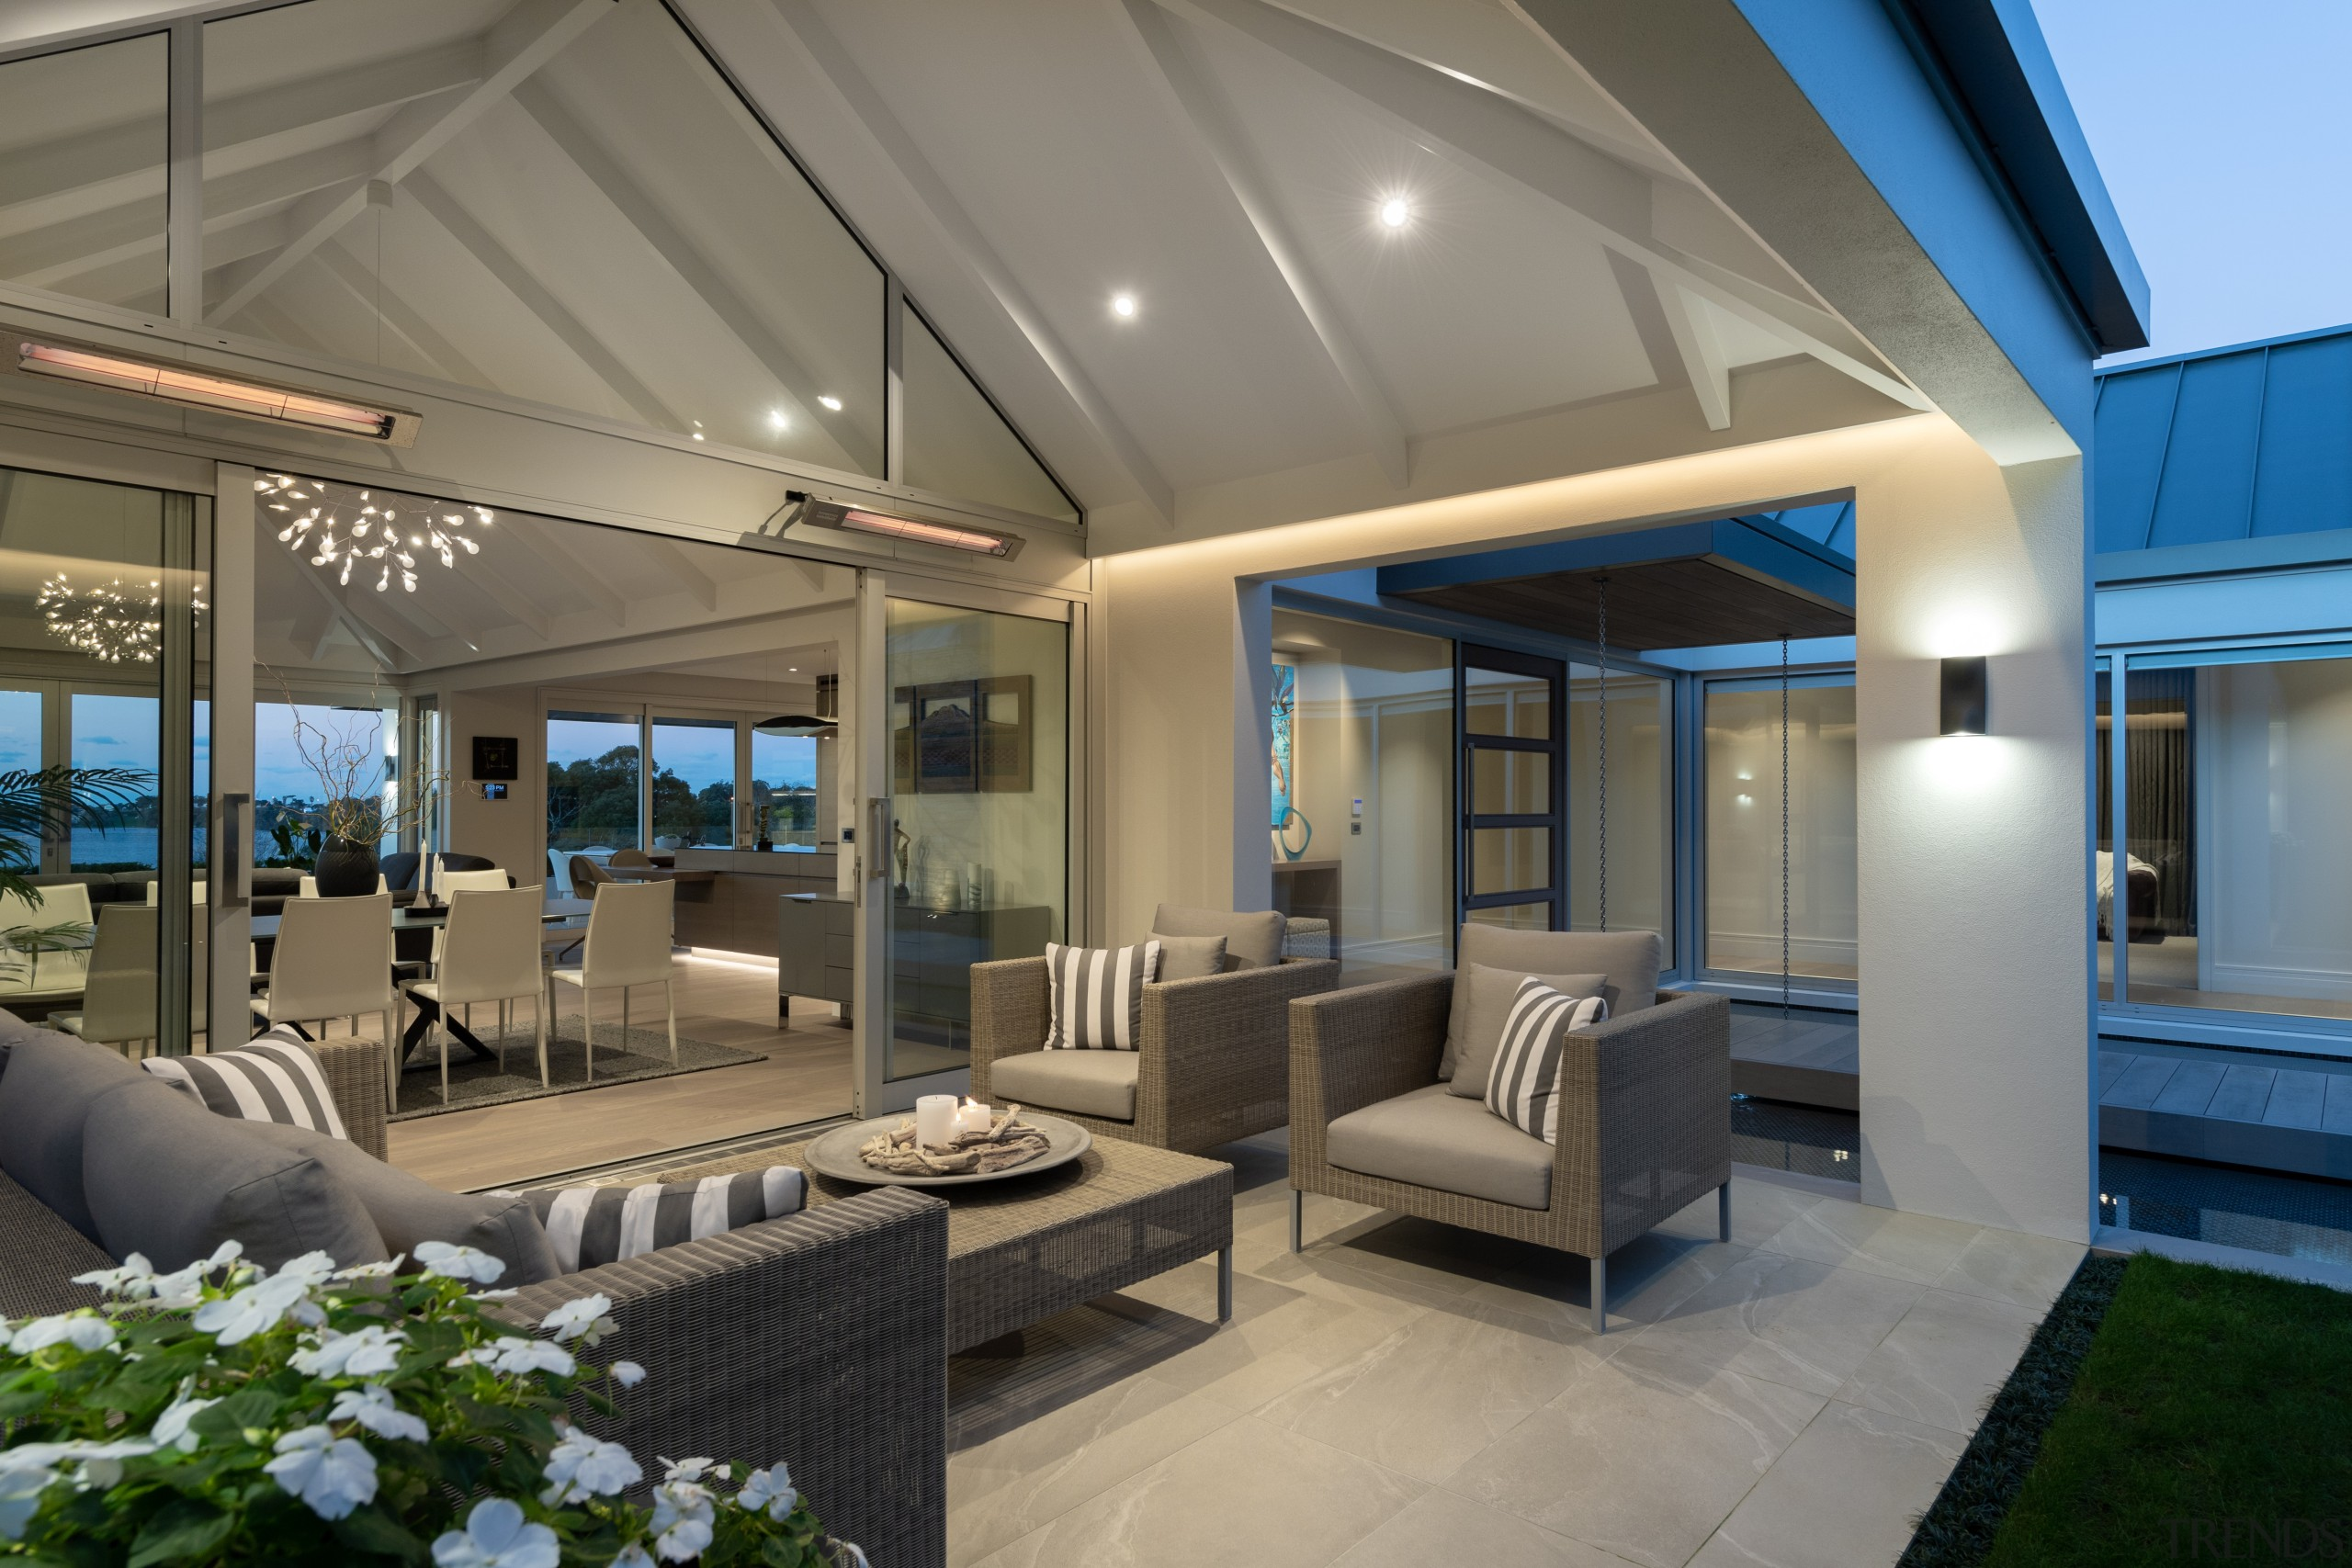 For this house by Mark Wilson of MDS,